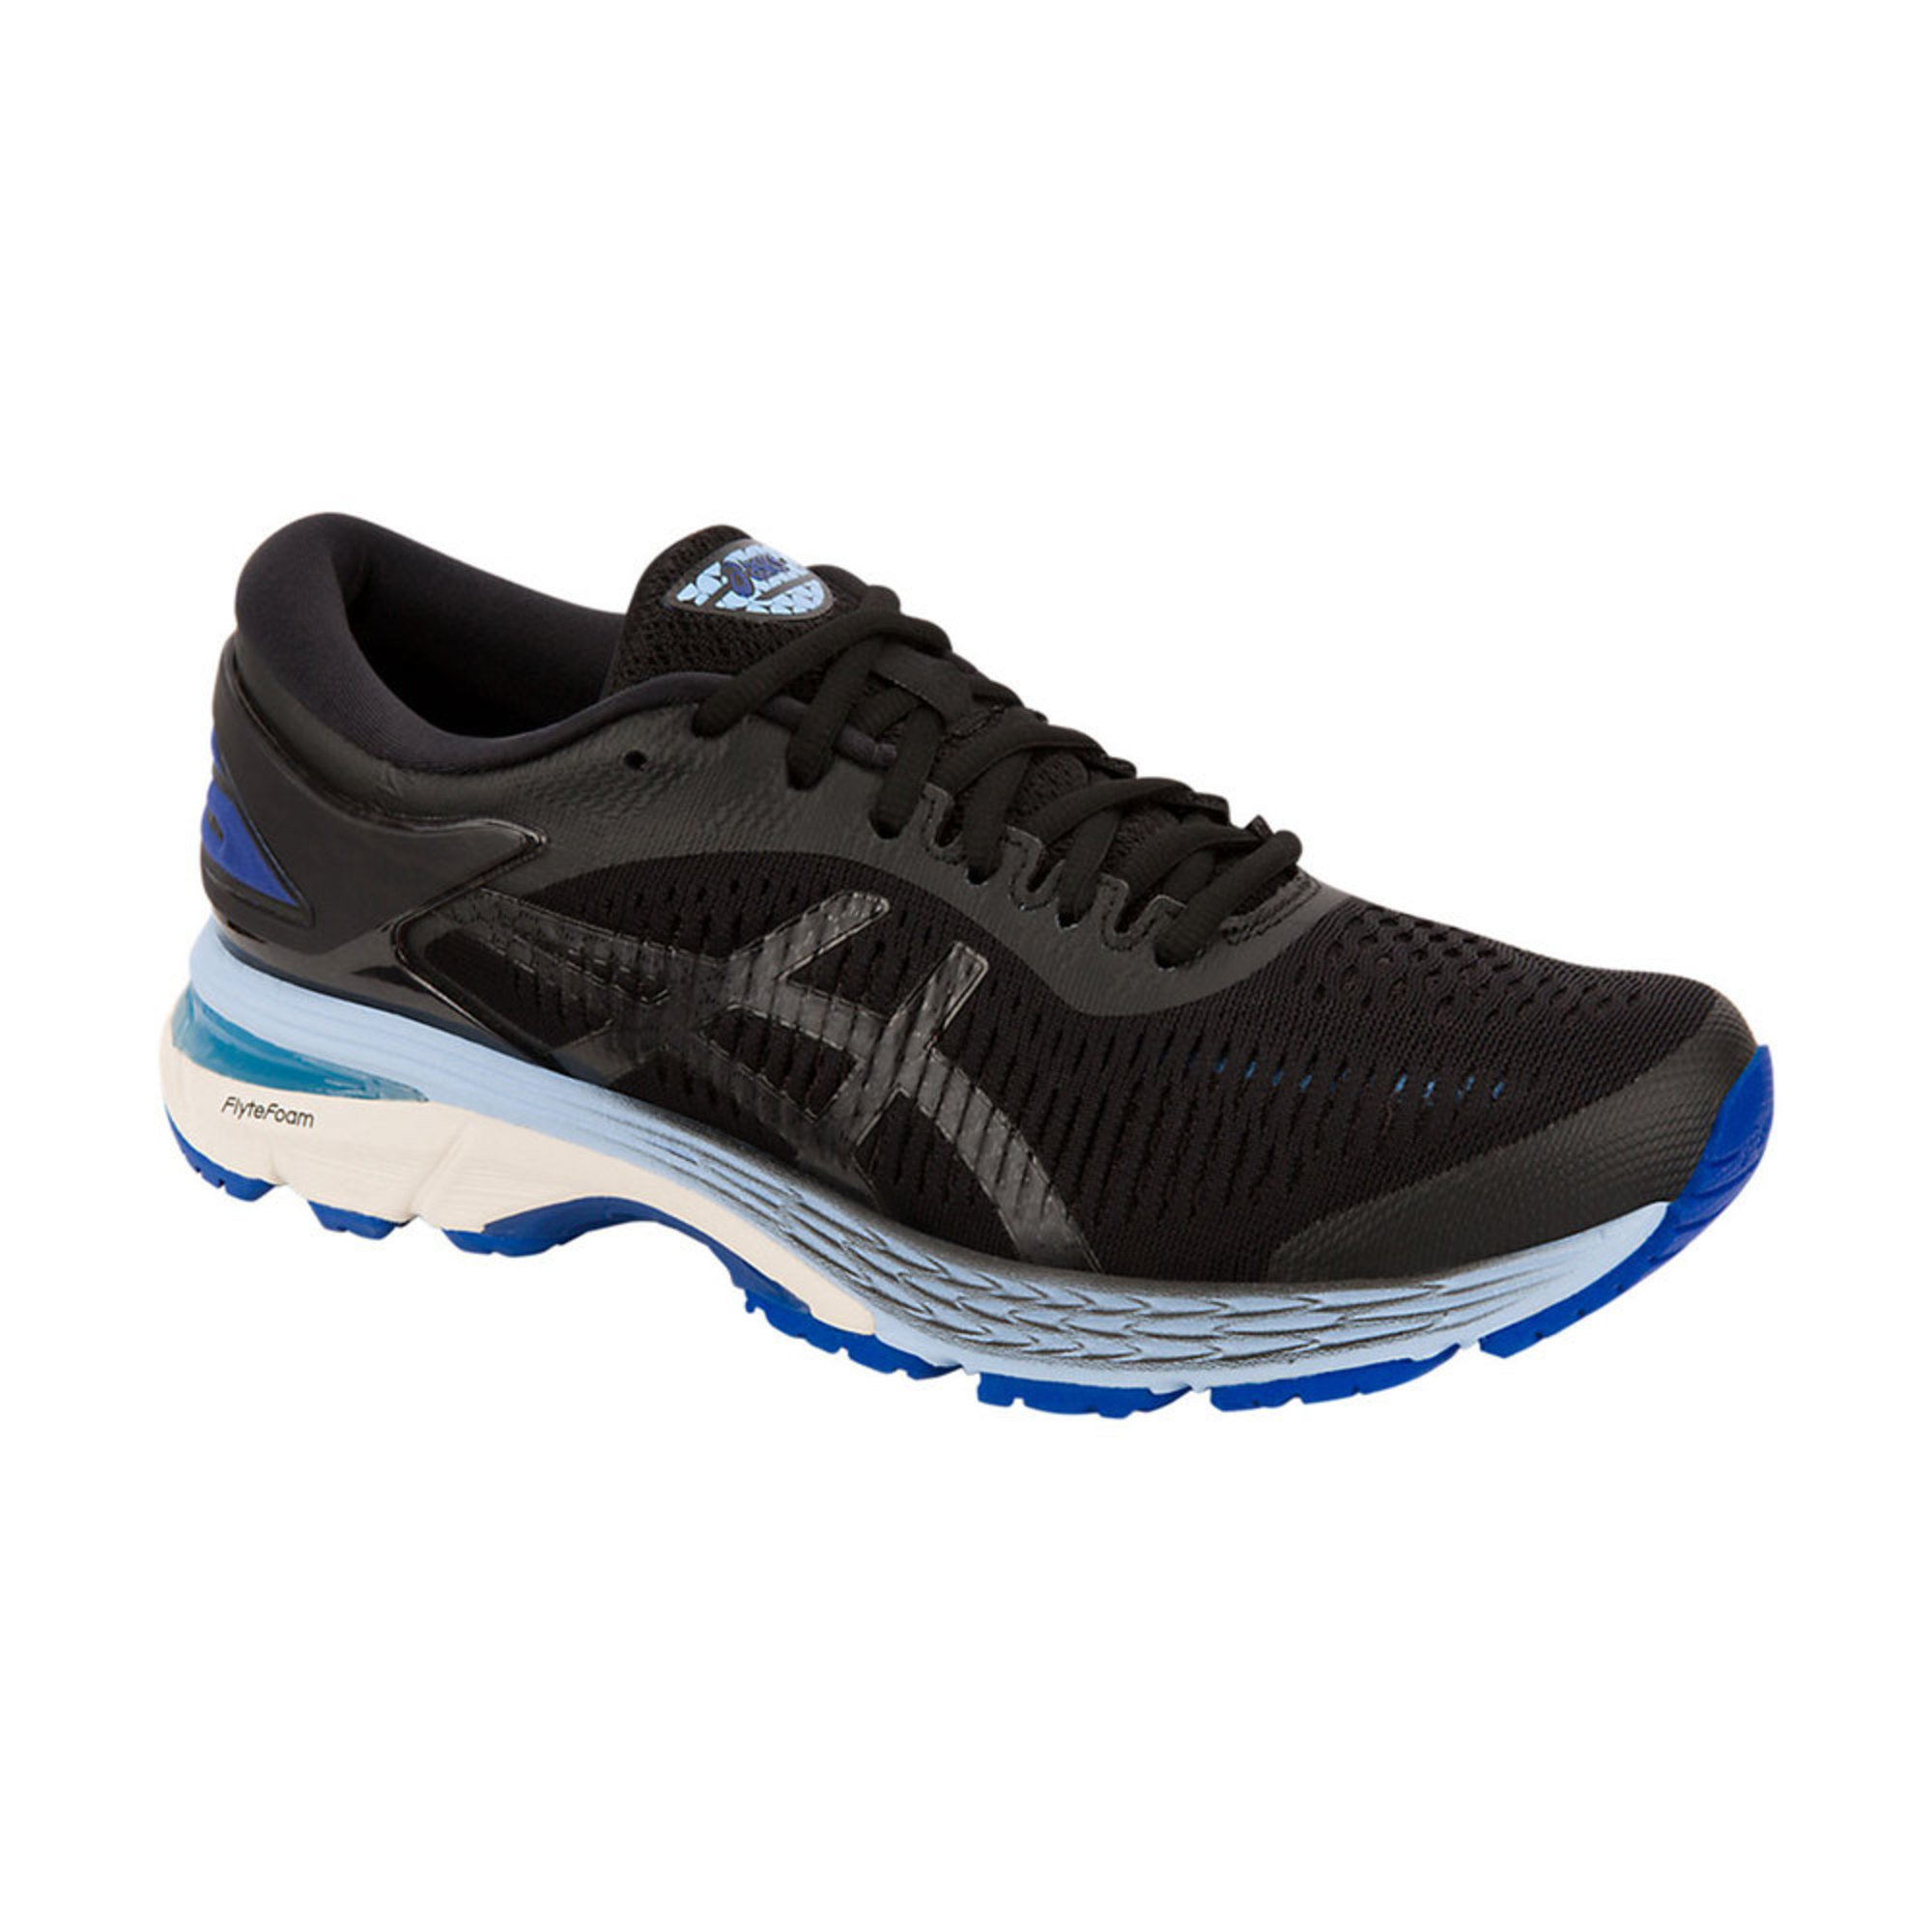 4afdd3667183 Asics Women s Gel Kayano 25 Running Shoe